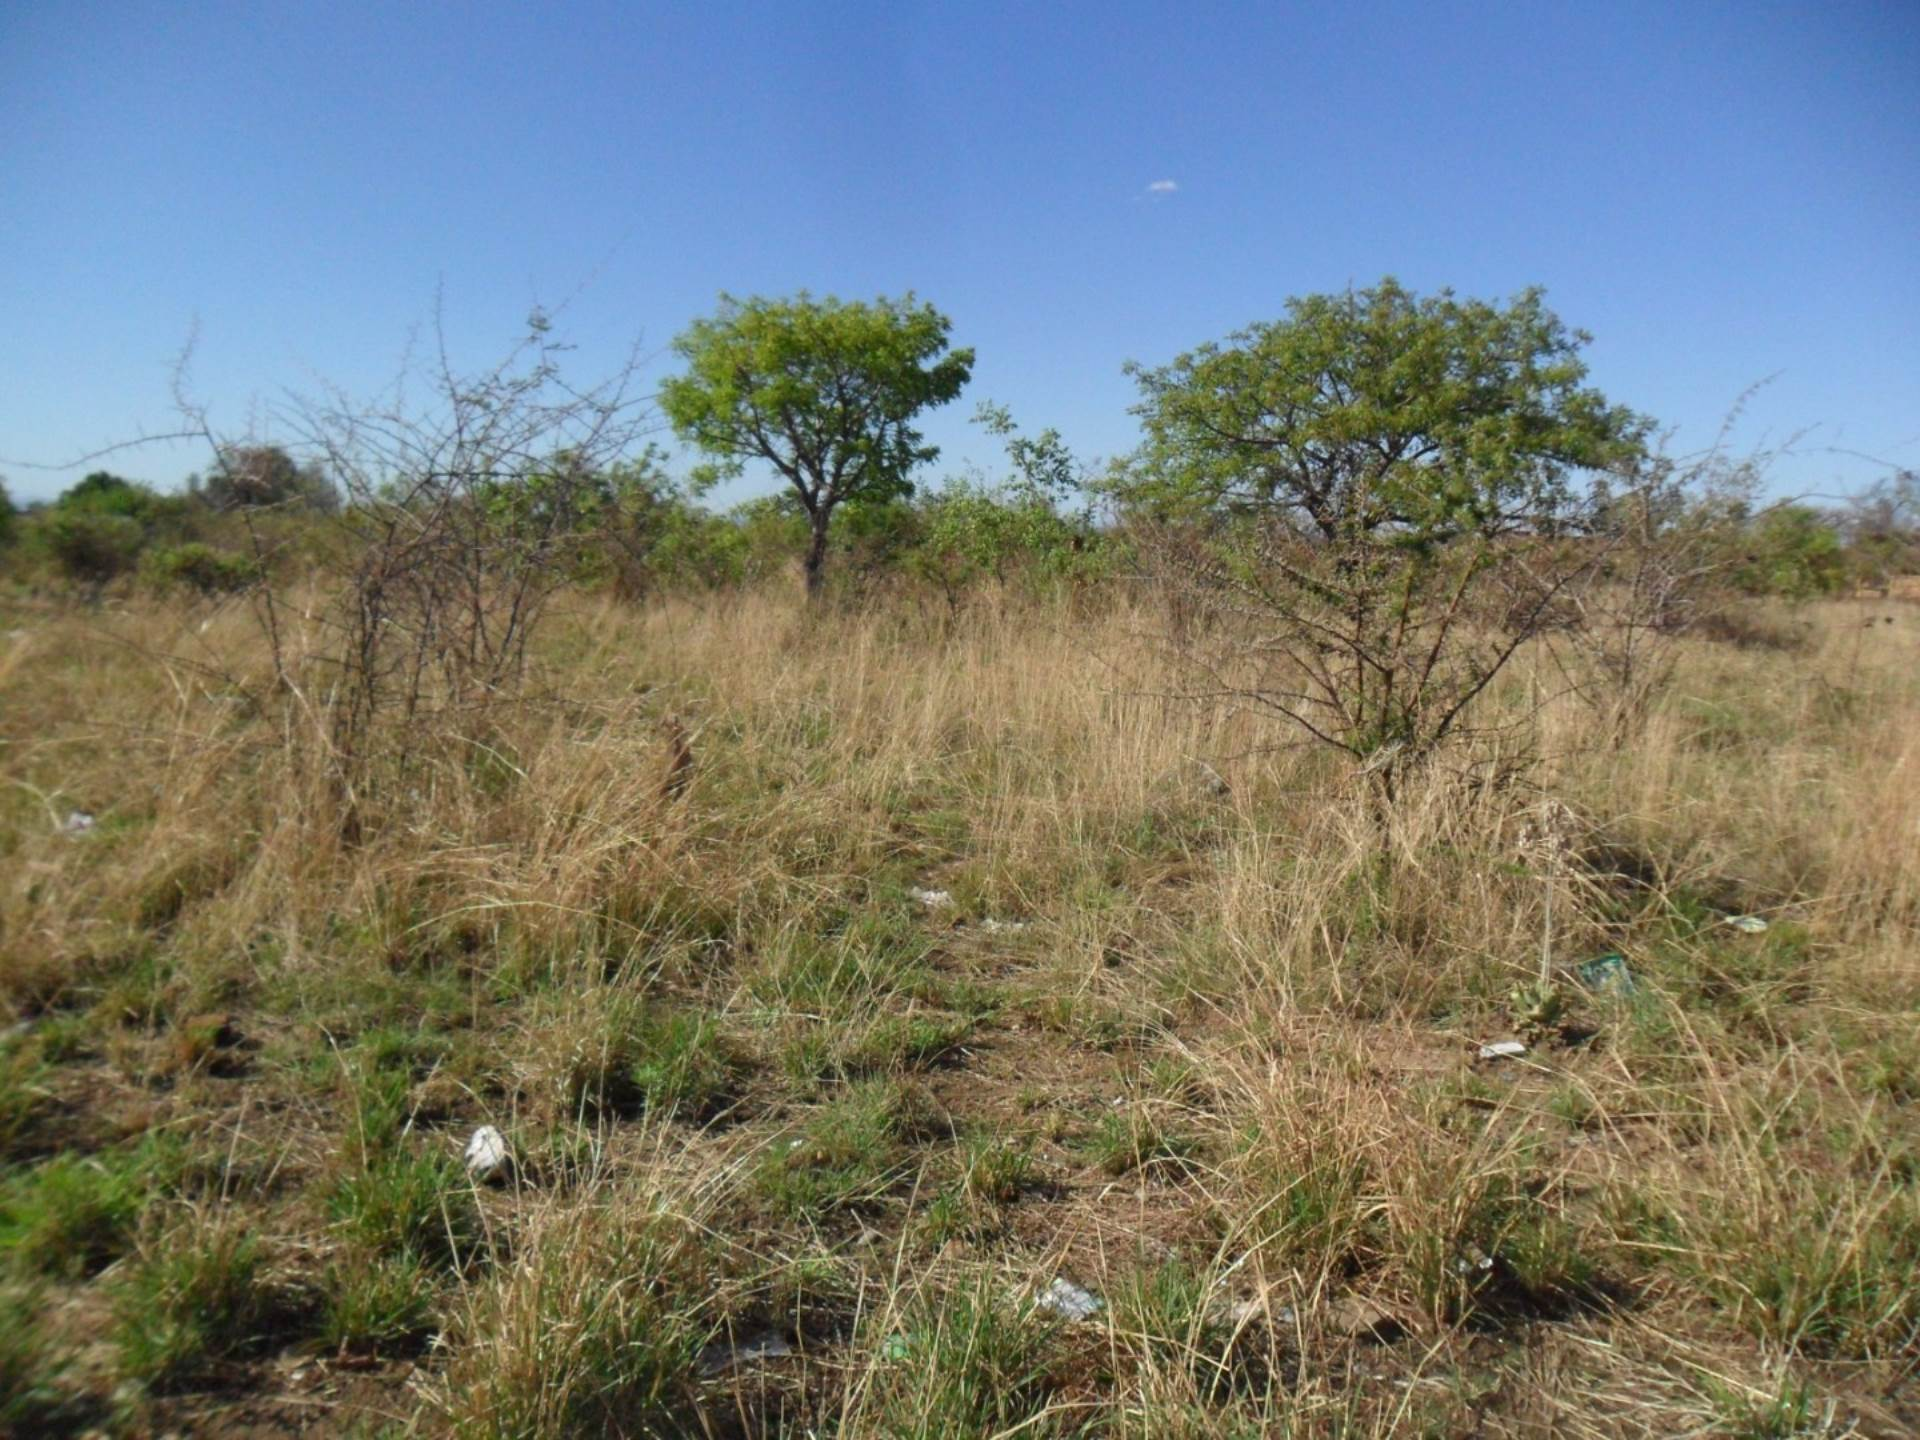 Vacant Land Residential For Sale In Lethlabile